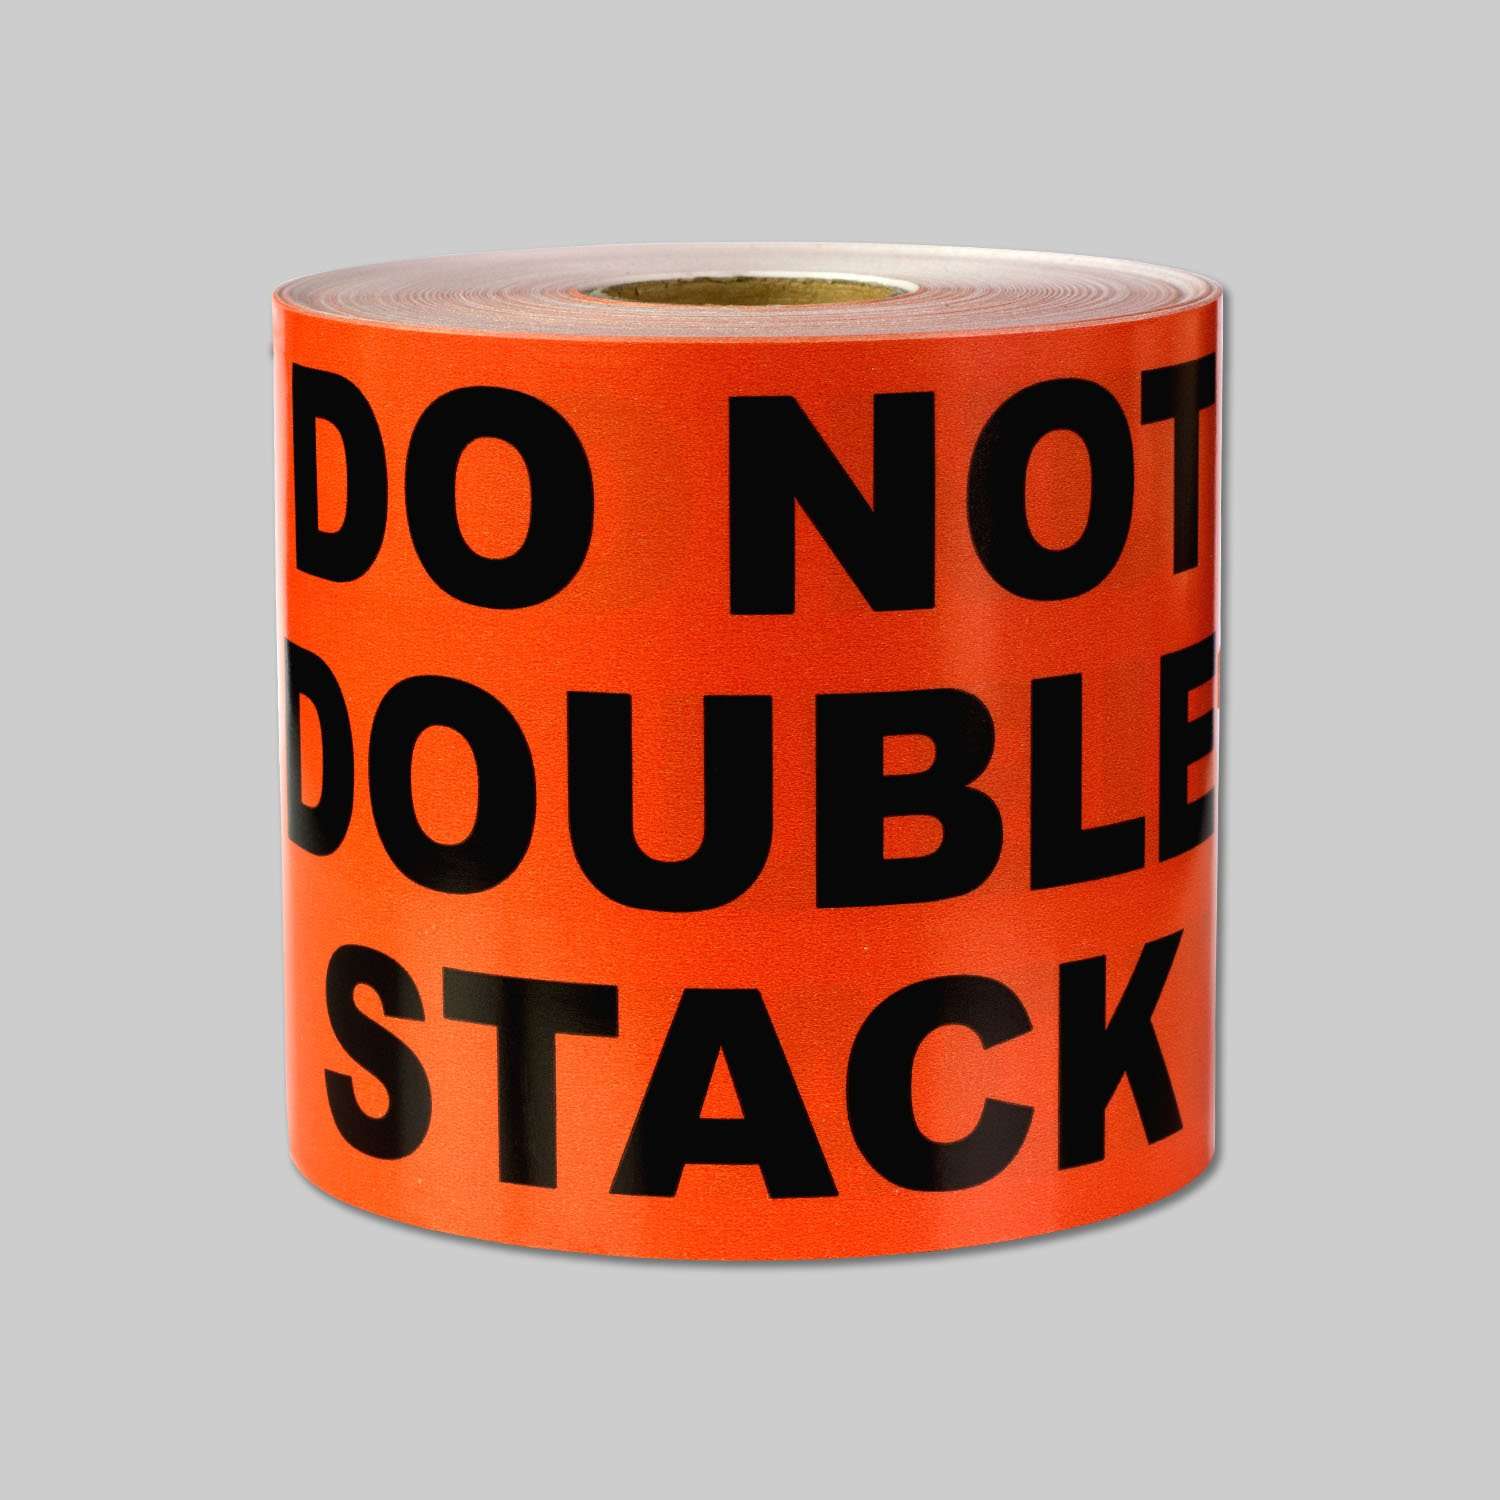 DO NOT DOUBLE STACK Warning Labels Self Adhesive Stickers (Orange Black / 5'' x 3'') - 300 labels per package